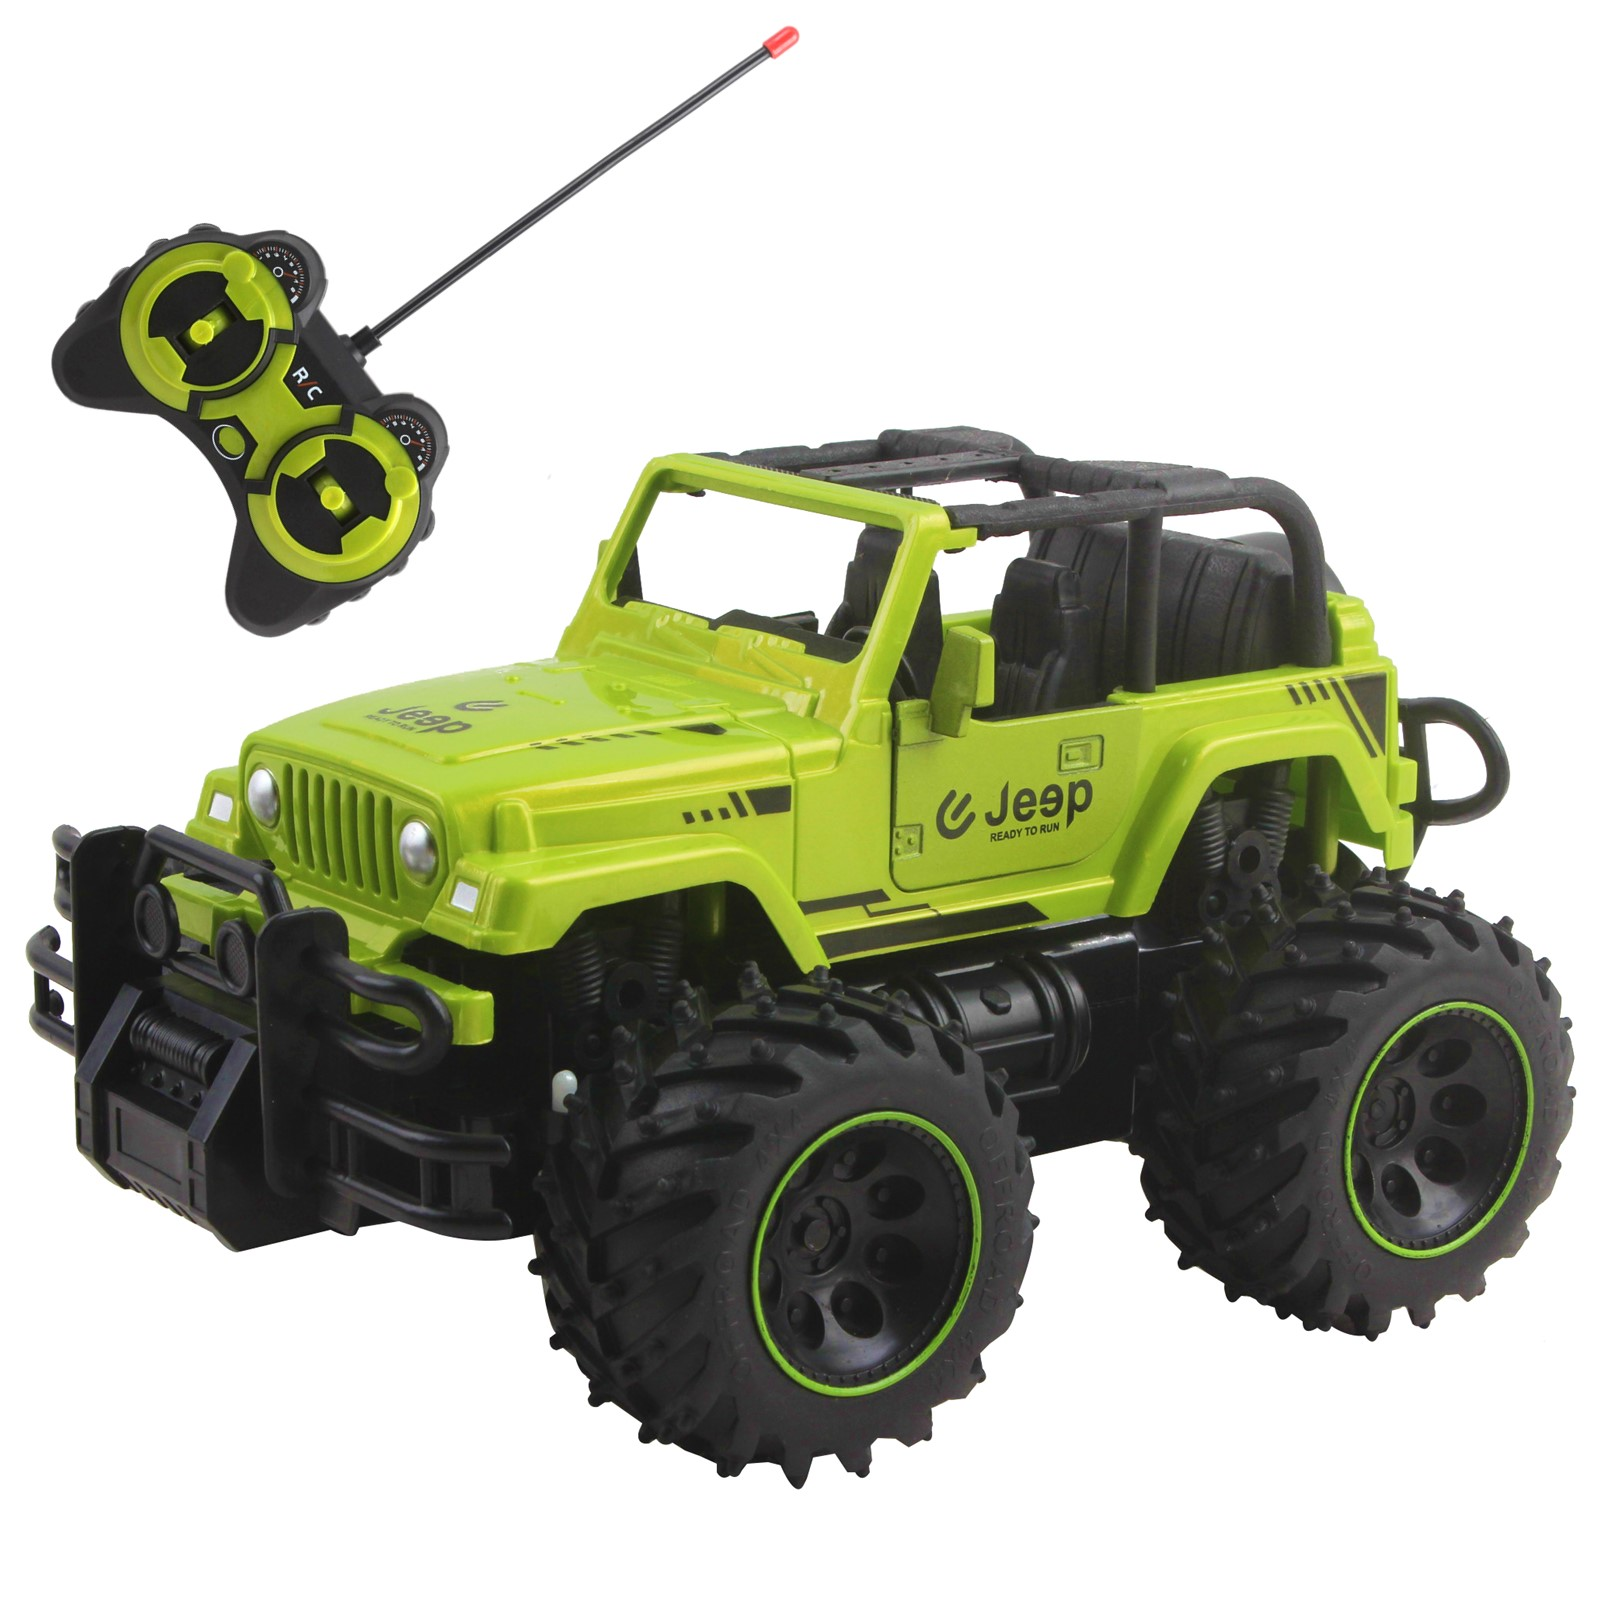 "Vokodo RC Truck 10"" 1:16 Scale Size Jeep With Big Off-Road Tires And Opening Doors SUV Remote Control Indoor Outdoor Car Ready To Run Electric RTR Kids Toy Vehicle Great Gift For Children Boys Girls"